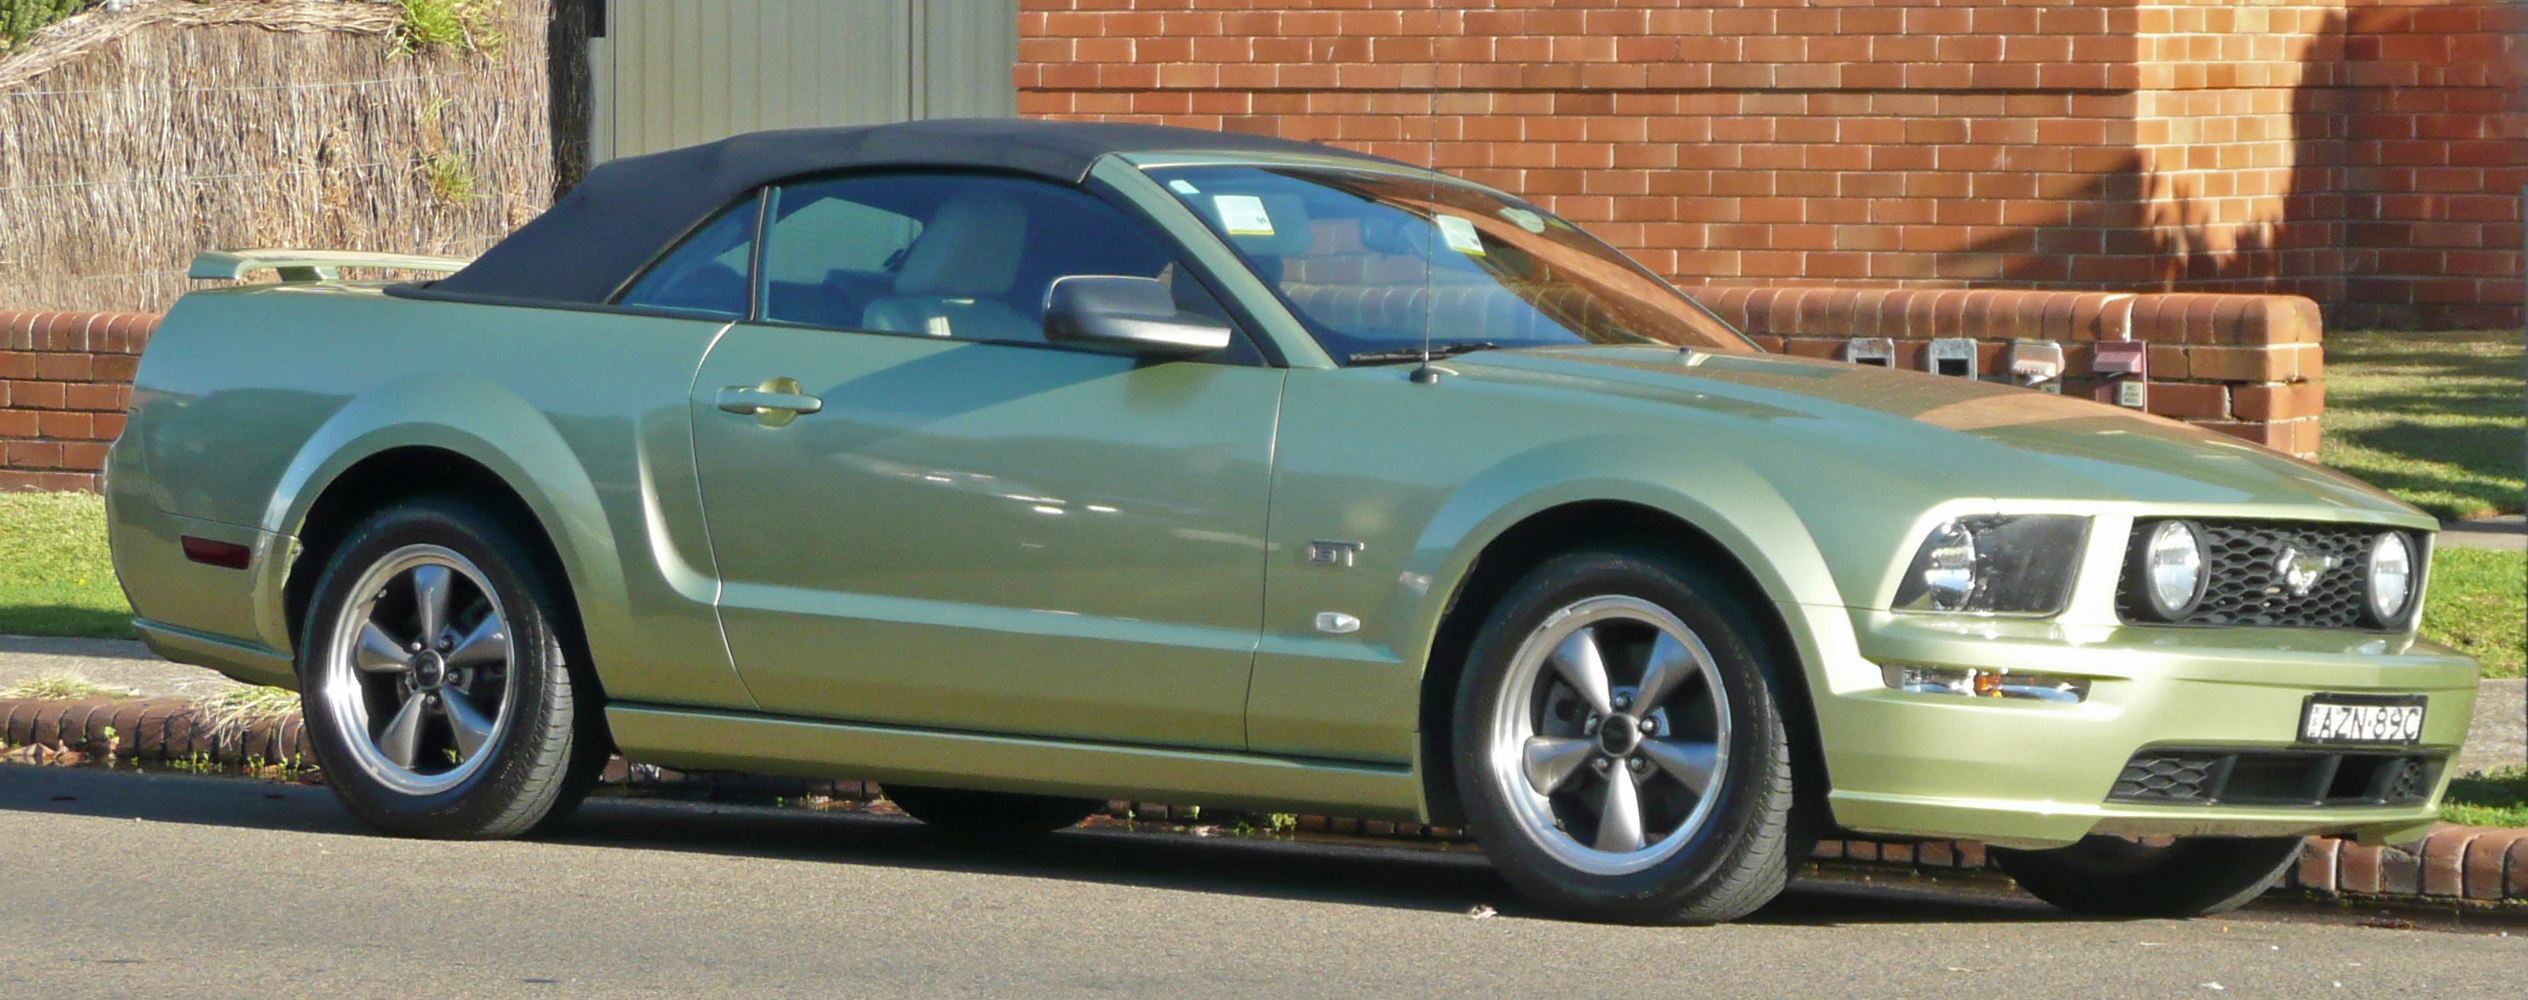 2009 Ford Mustang Blue File:2005-2009 Ford Mustang gt